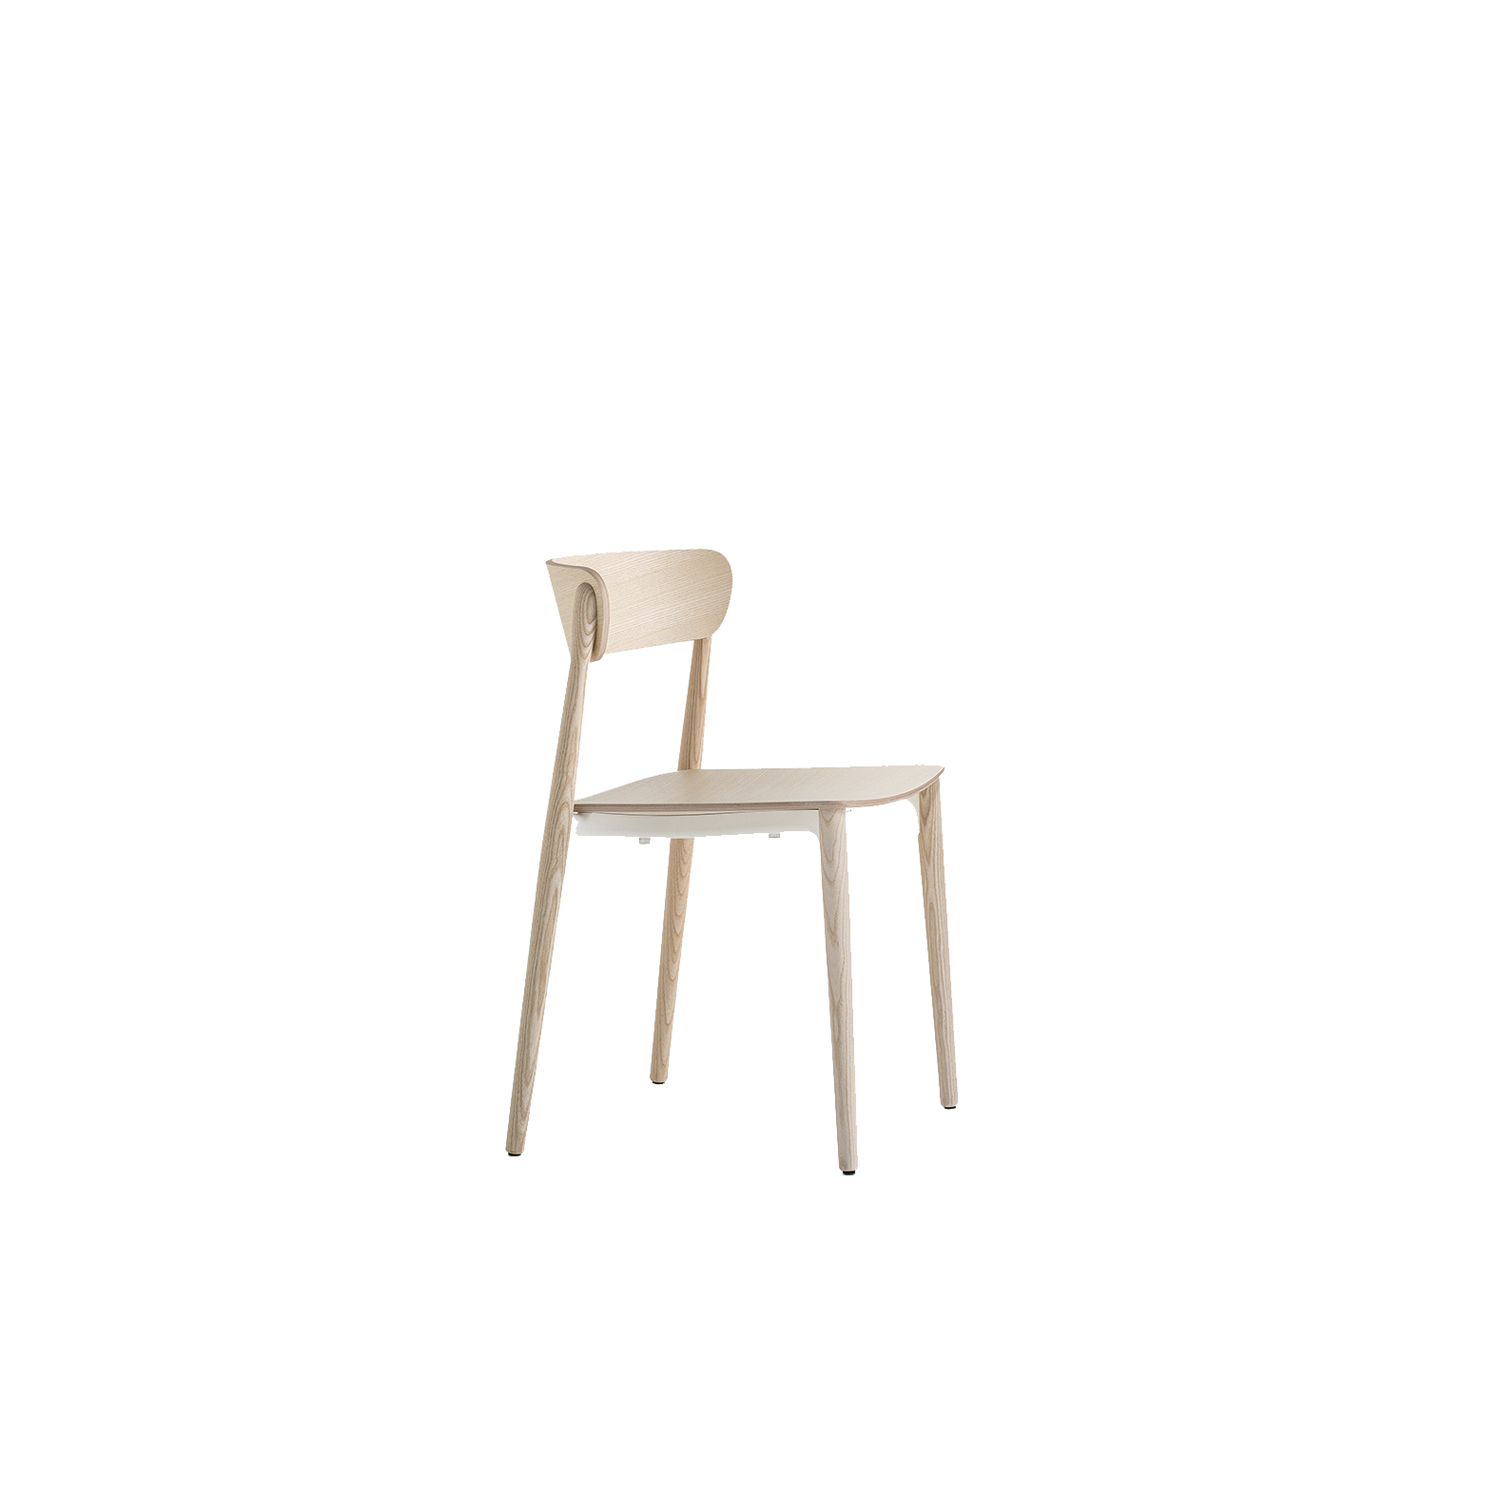 Nemea Chair - Nemea is a collection of classically-shaped seatings, whose visible, light structural elements seem to be smoothed by time, like findings from the Ancient Greece. The chair seems to extend into an athletic pose, with its sinuous legs in solid ash grafted to the die-casted aluminium frame placed under the plywood seat. The embracing, comfortable backrest crowns the seat. Stackable. Seat upholstered in fabric or leather.   | Matter of Stuff